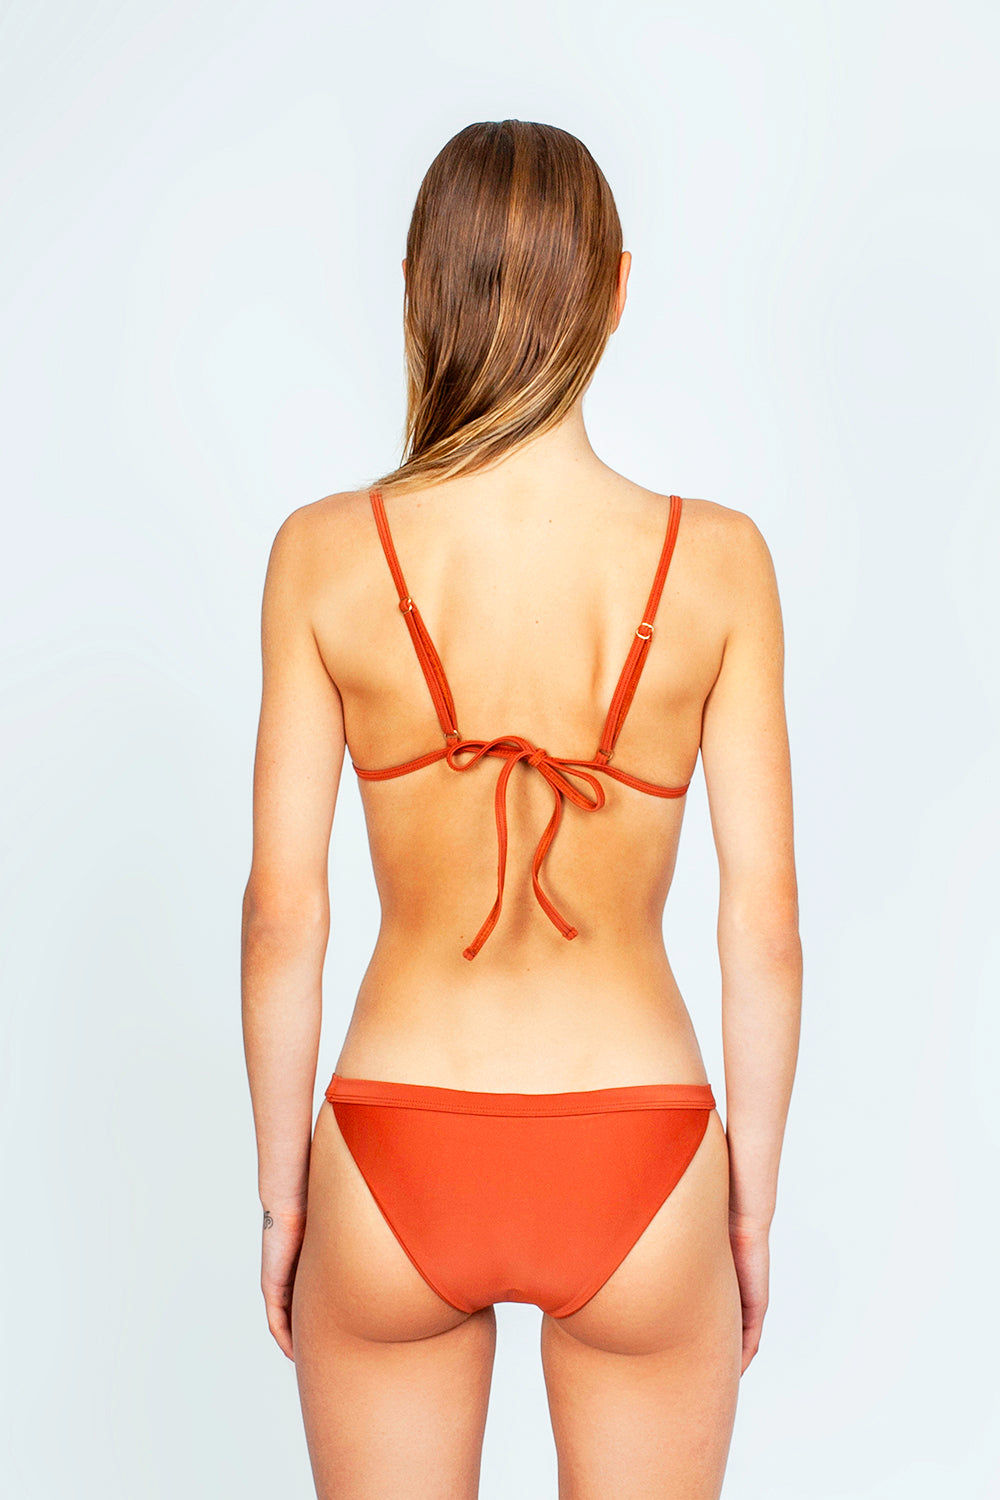 THE ONES WHO Ava Sporty Bikini Top - Copper Orange Bikini Top | Copper Orange| The Ones Who Ava Sporty Bikini Top - Copper Orange Sporty and minimal top Adjustable shoulder straps Self-tie back Fully lined with no cups Made in LA  Fabric: 80% Nylon 20% Elastane Back View